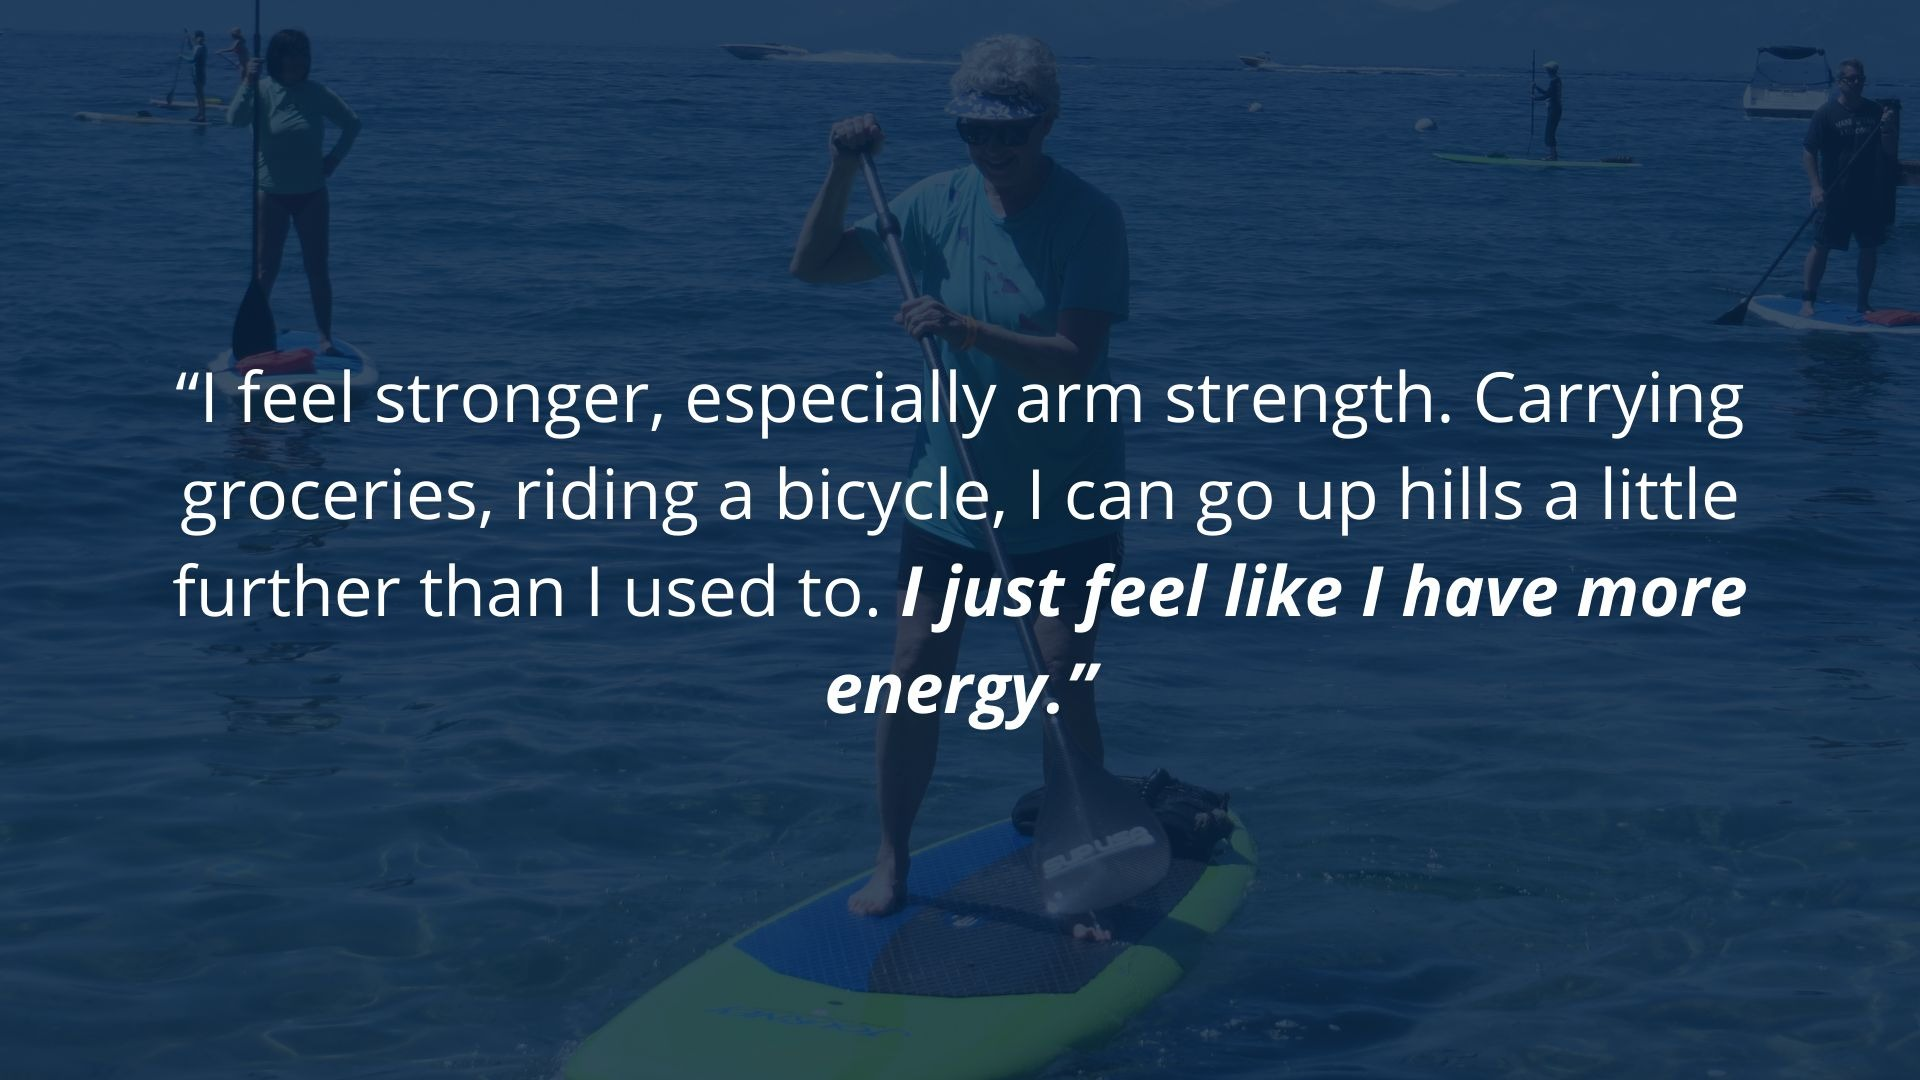 Virtual Personal training client feels stronger and has more energy